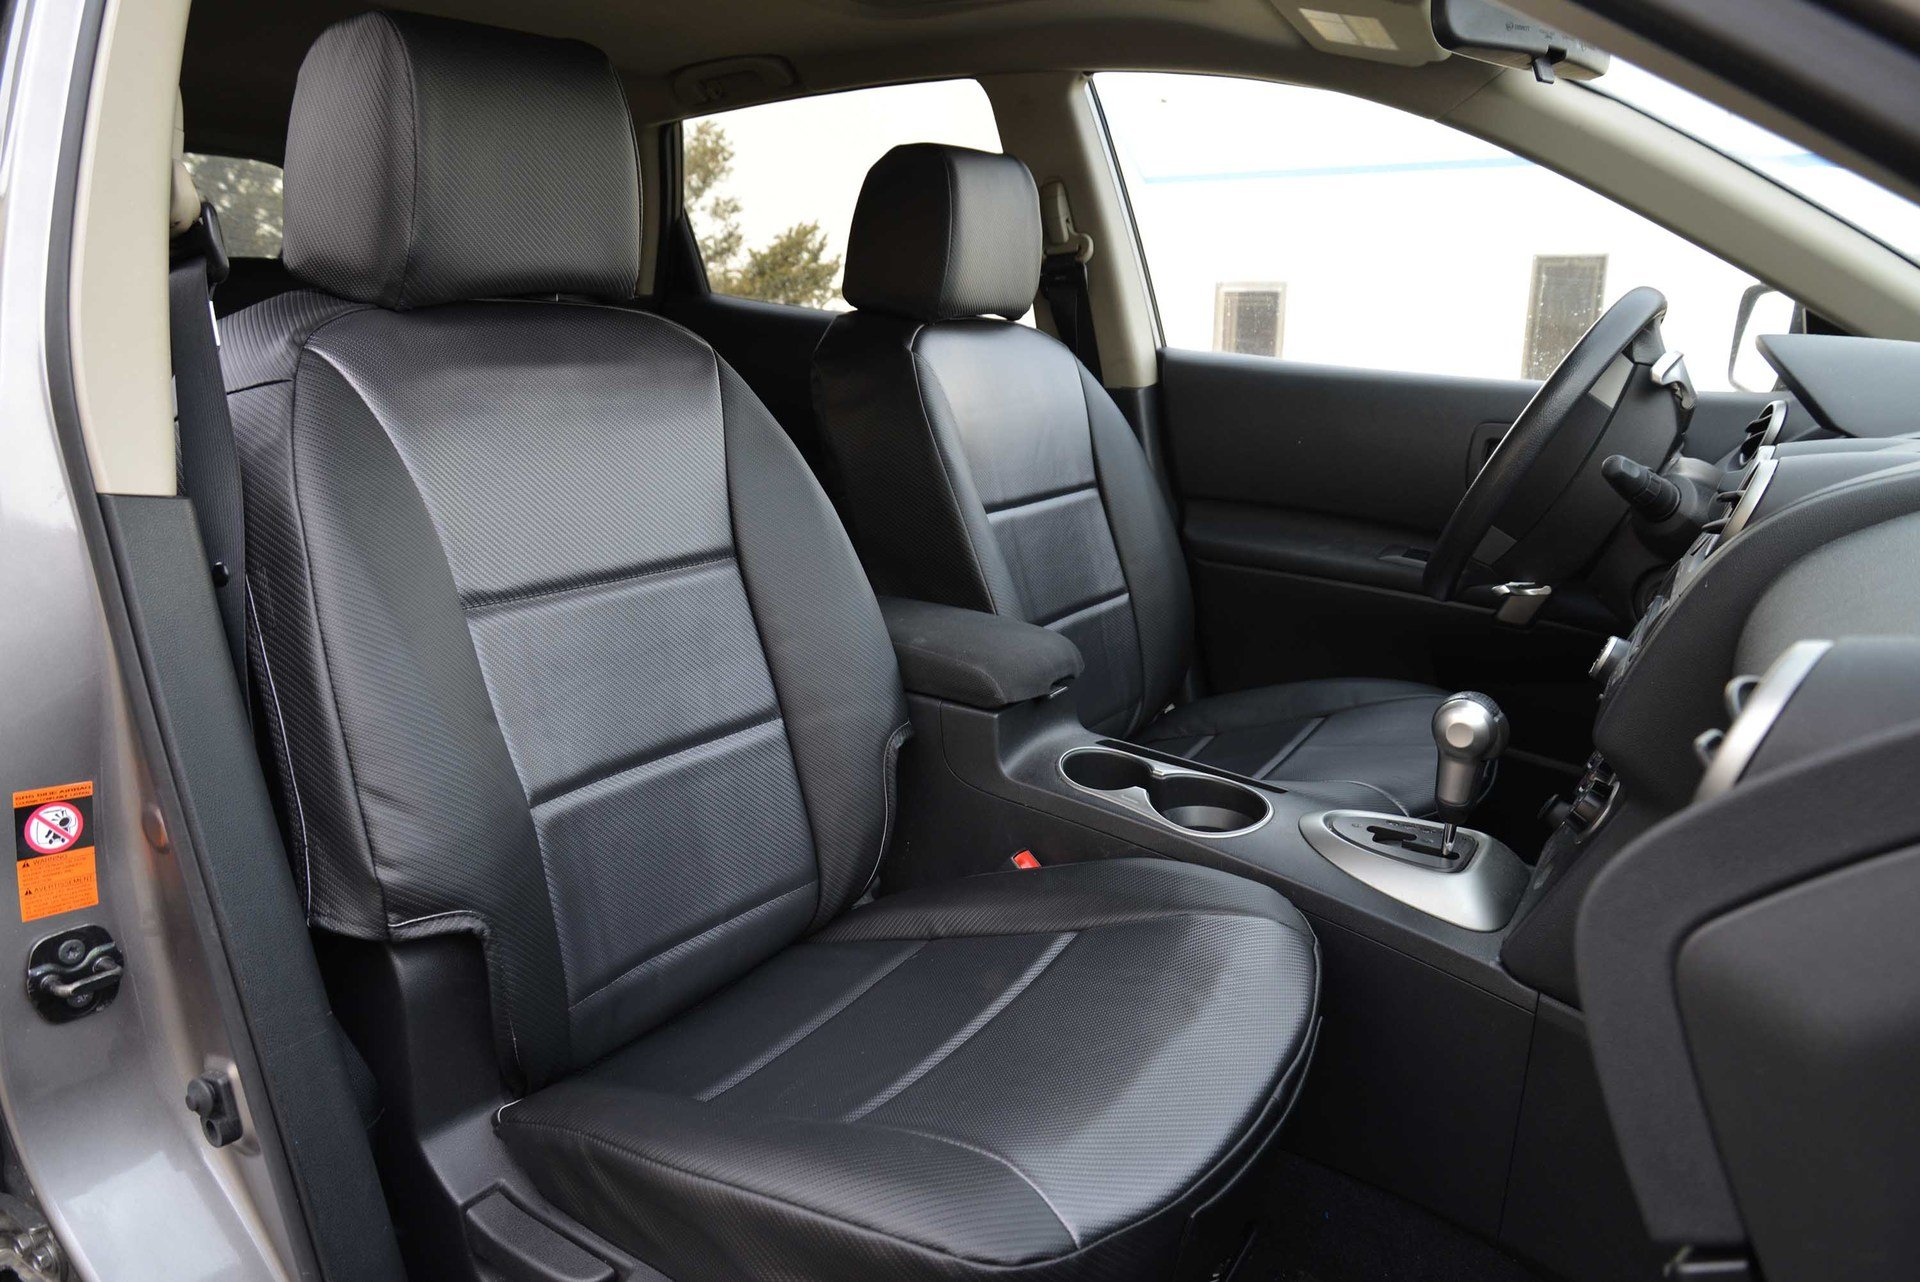 Outfitter series seat covers